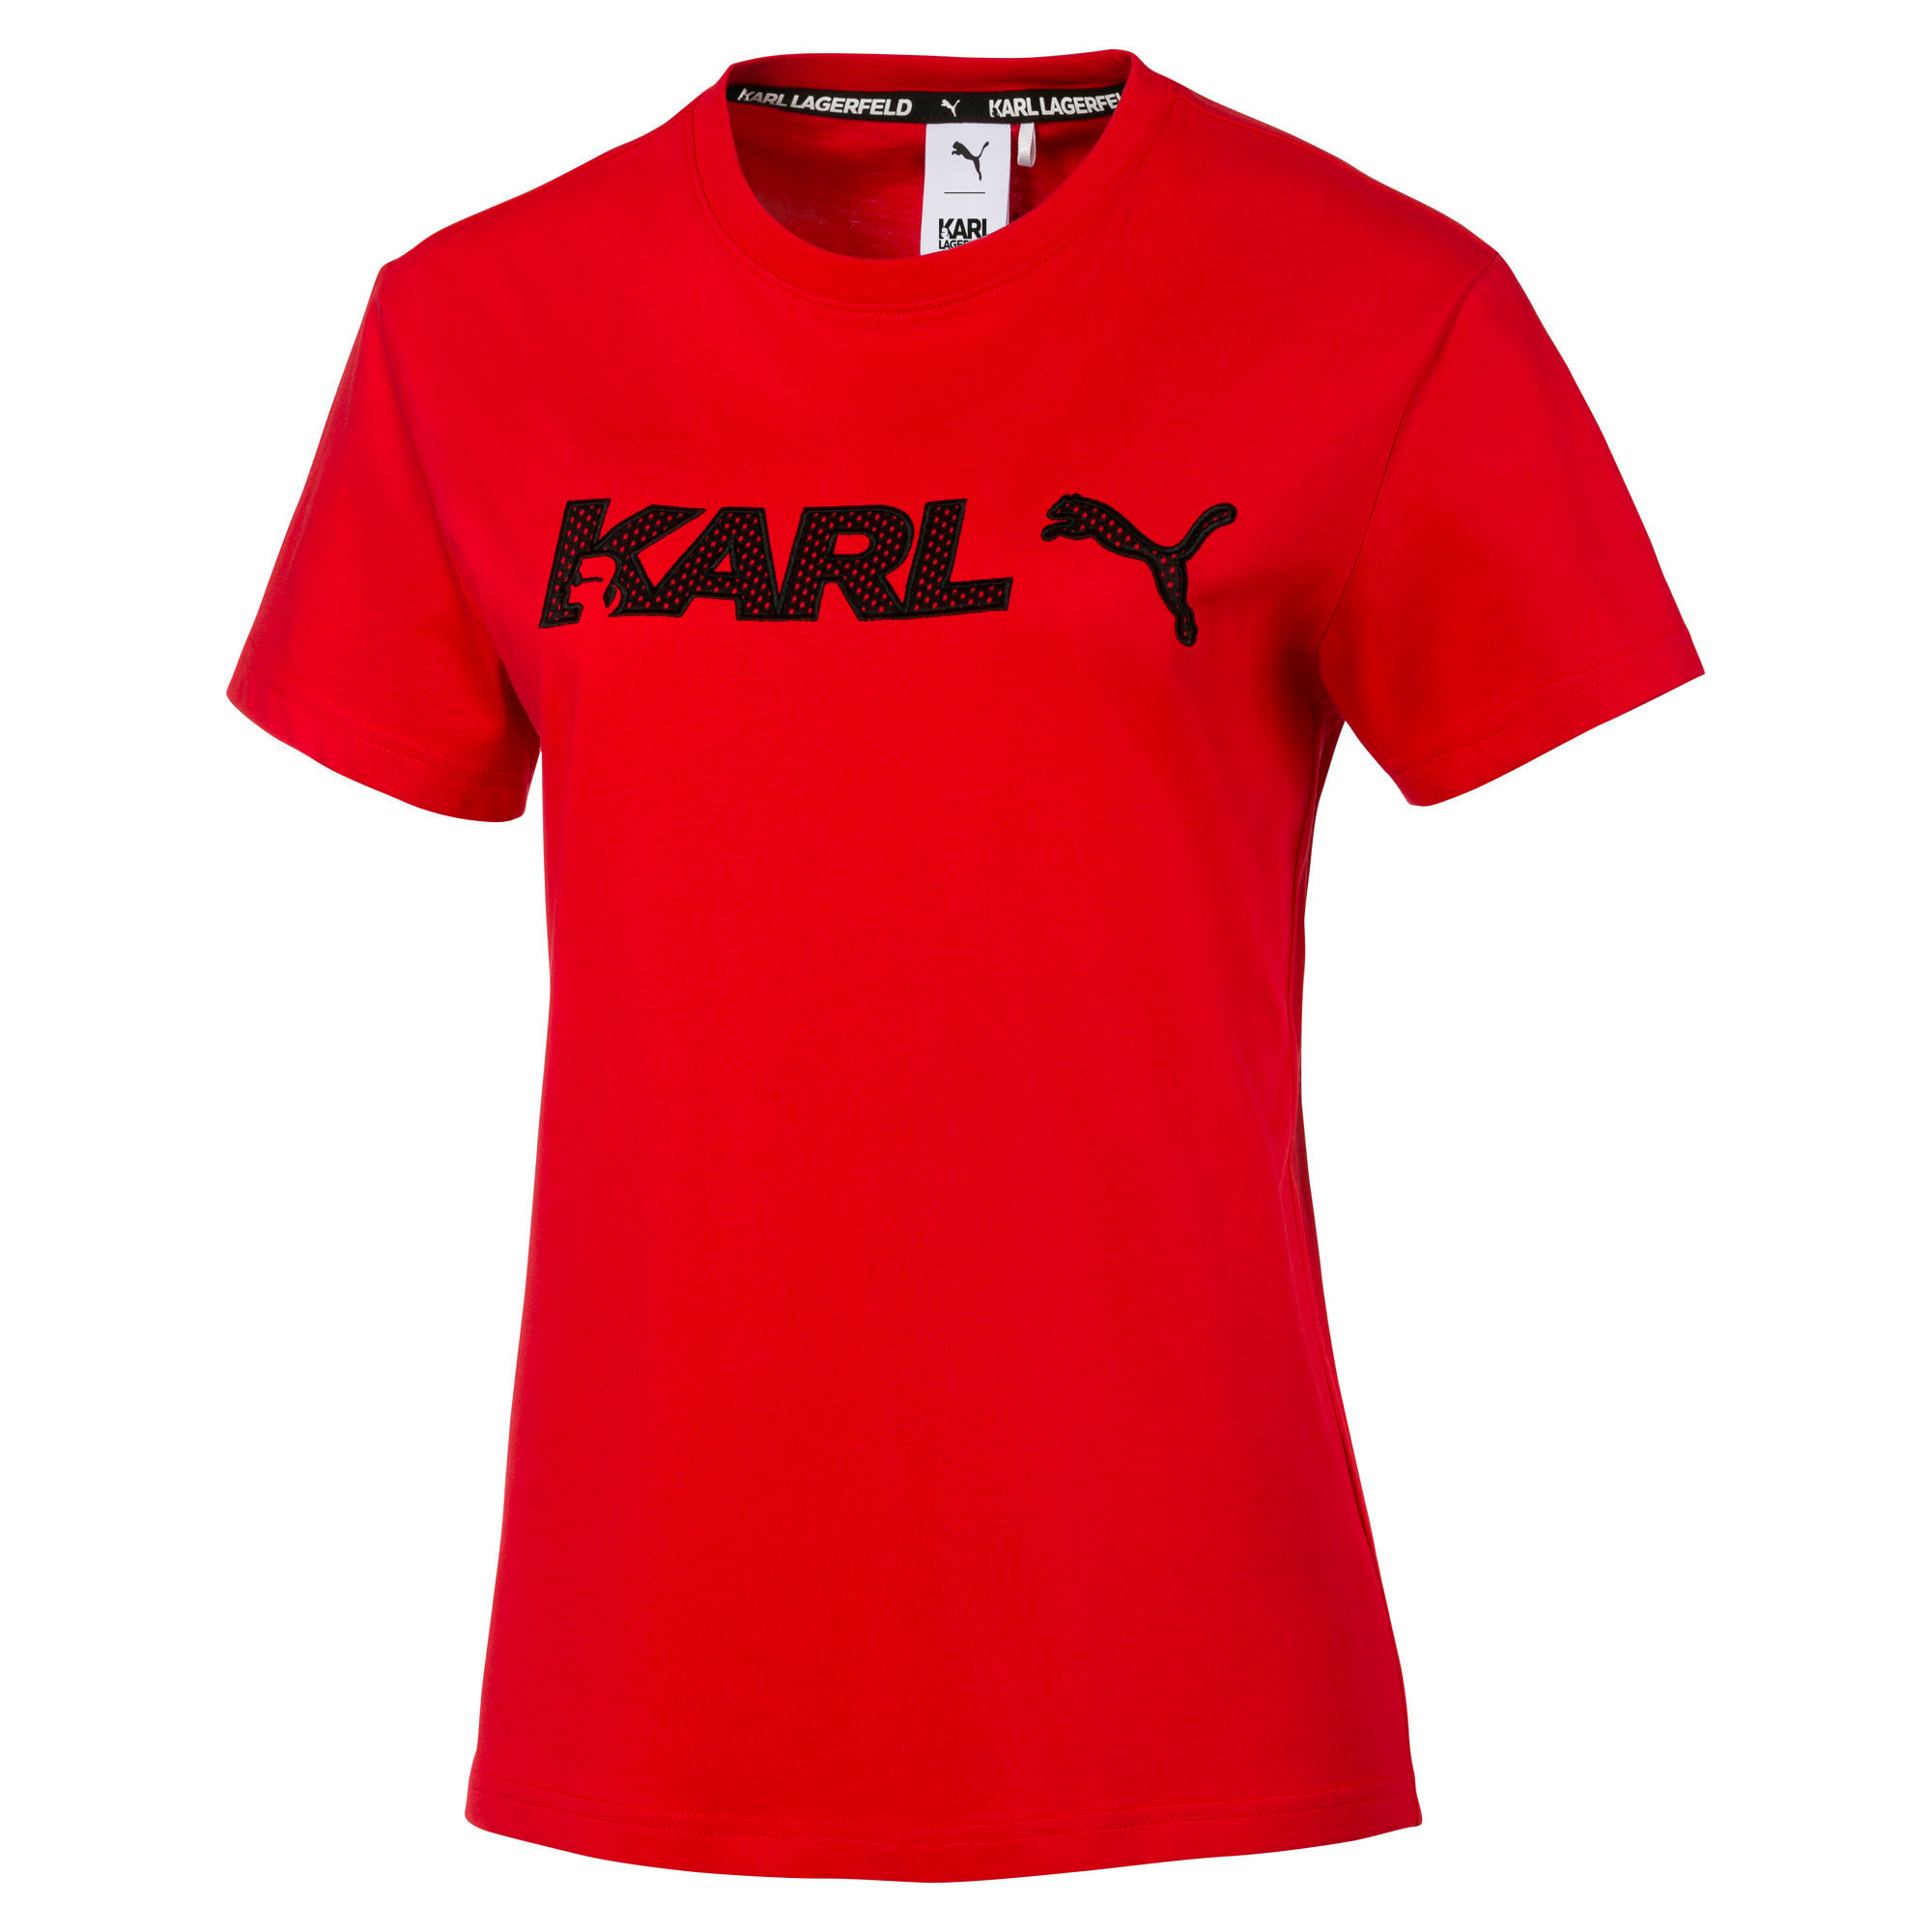 PUMA x KARL LAGERFELD Women's Tee, High Risk Red, large